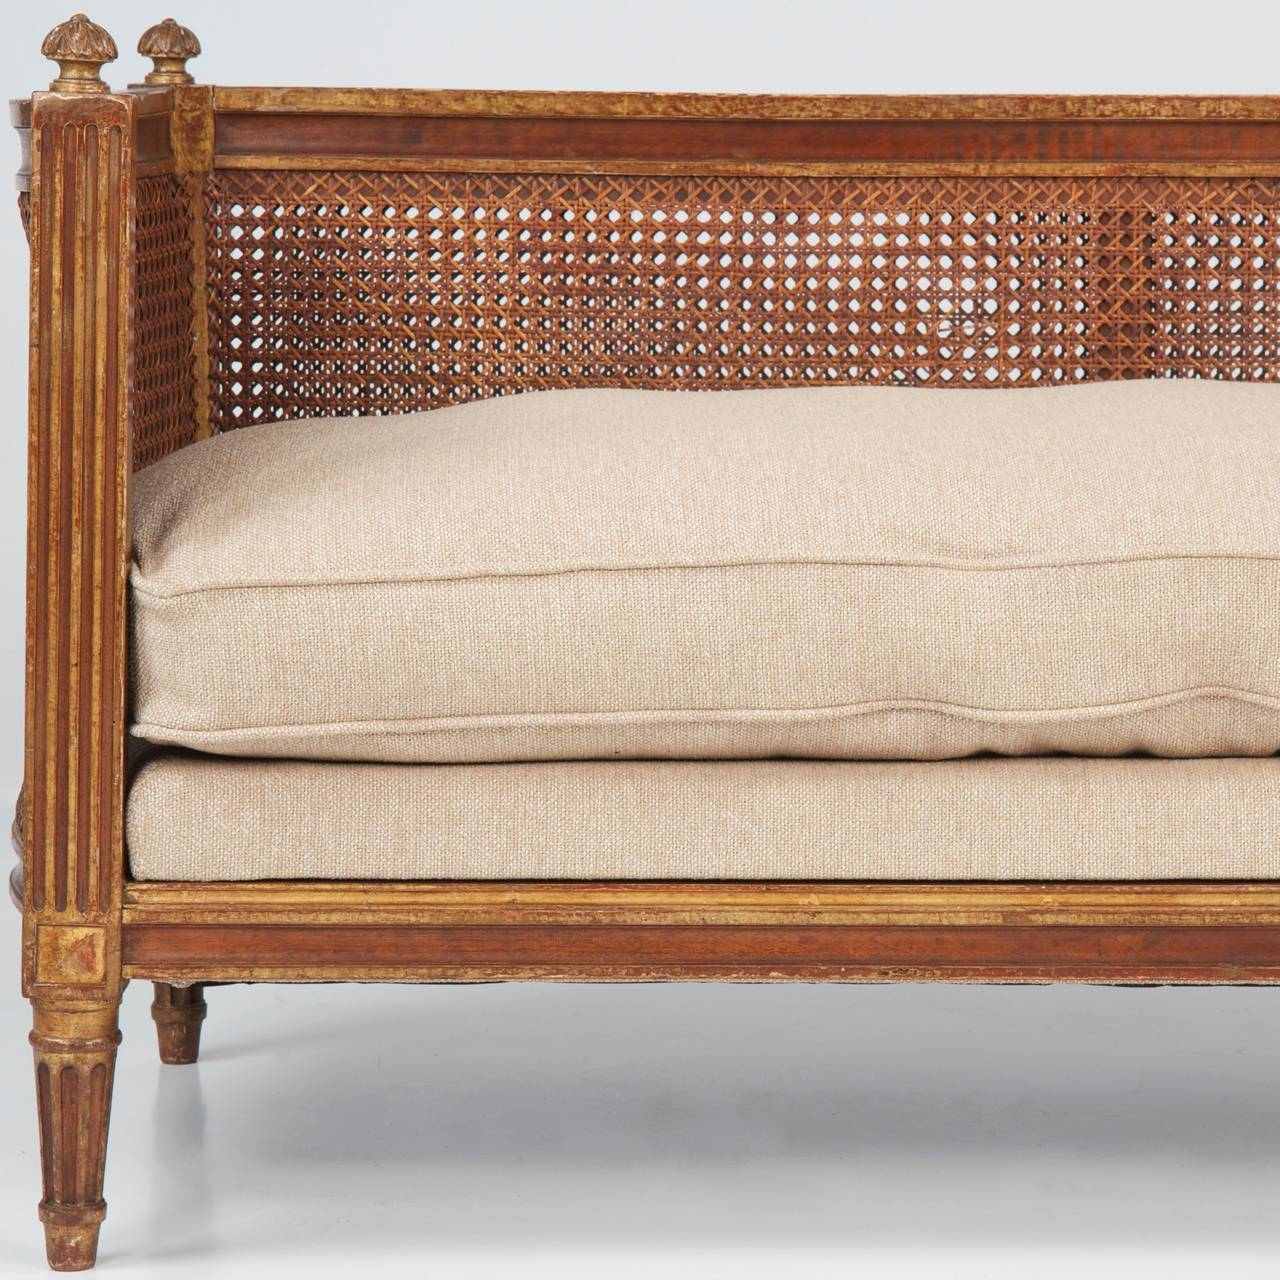 French Louis Xvi Style Antique Giltwood Settee Canape Loveseat C 1890 1910 At 1stdibs